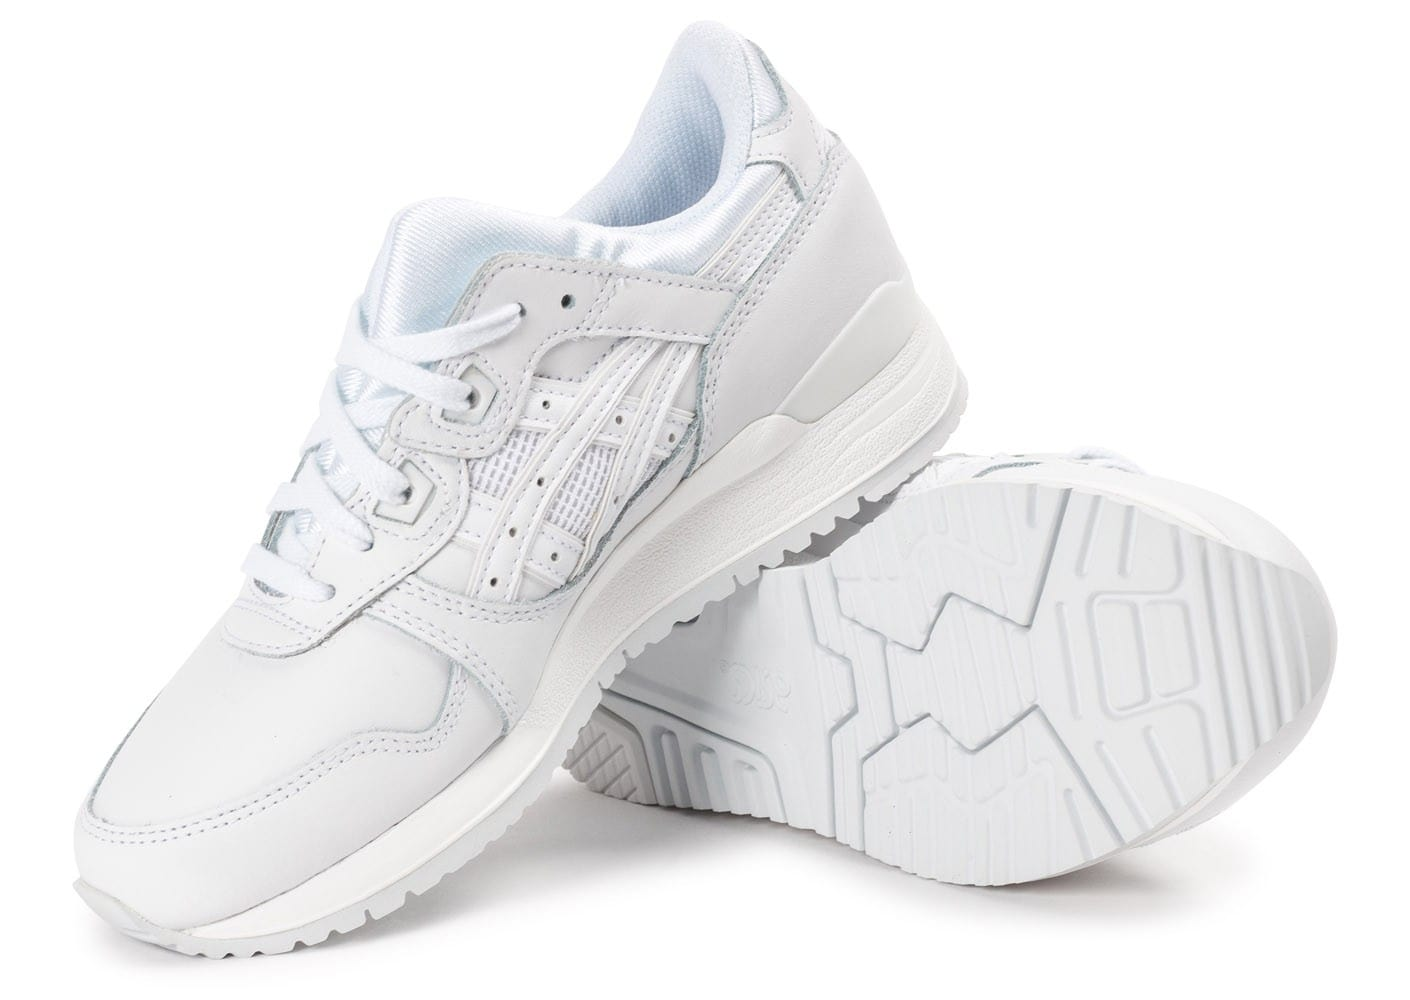 Gel 3 Asics Blanc Femme Triple Chaussures Lyte Junior Baskets Cuir XnrqRpfX